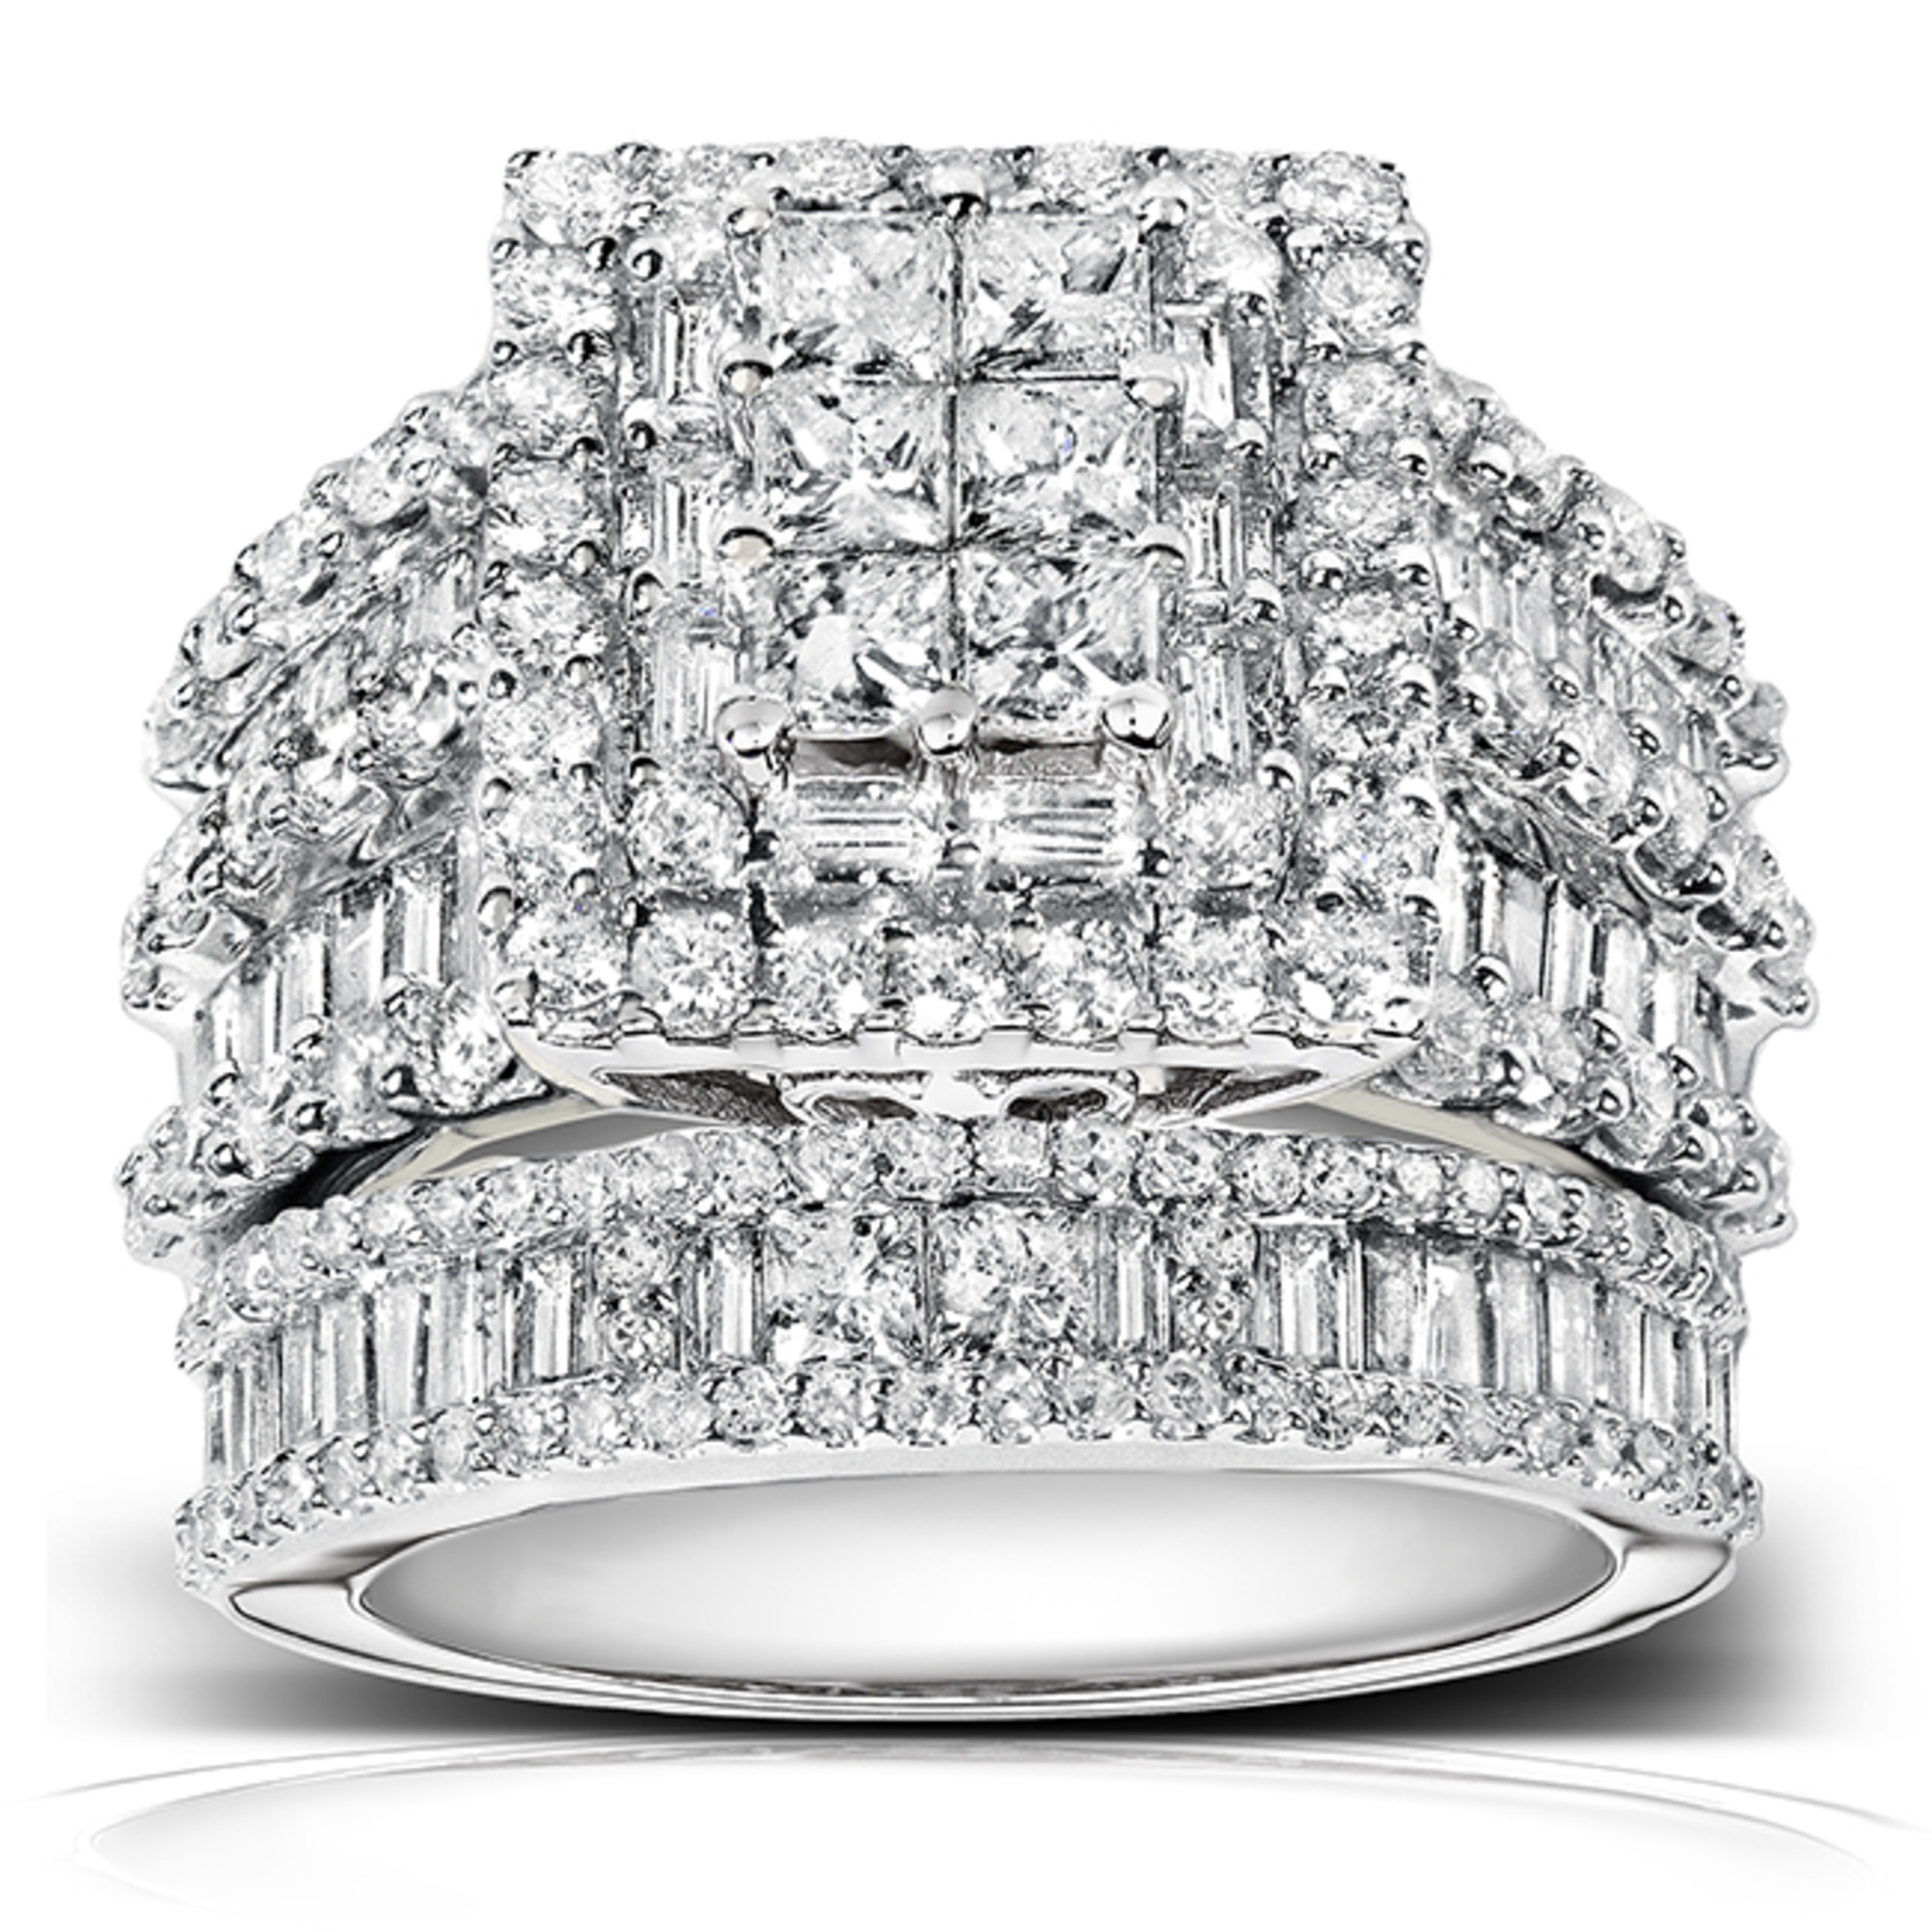 Diamond Engagement Ring and Wedding Band Set 2 4 5 carats (ctw) in 14K White Gold by